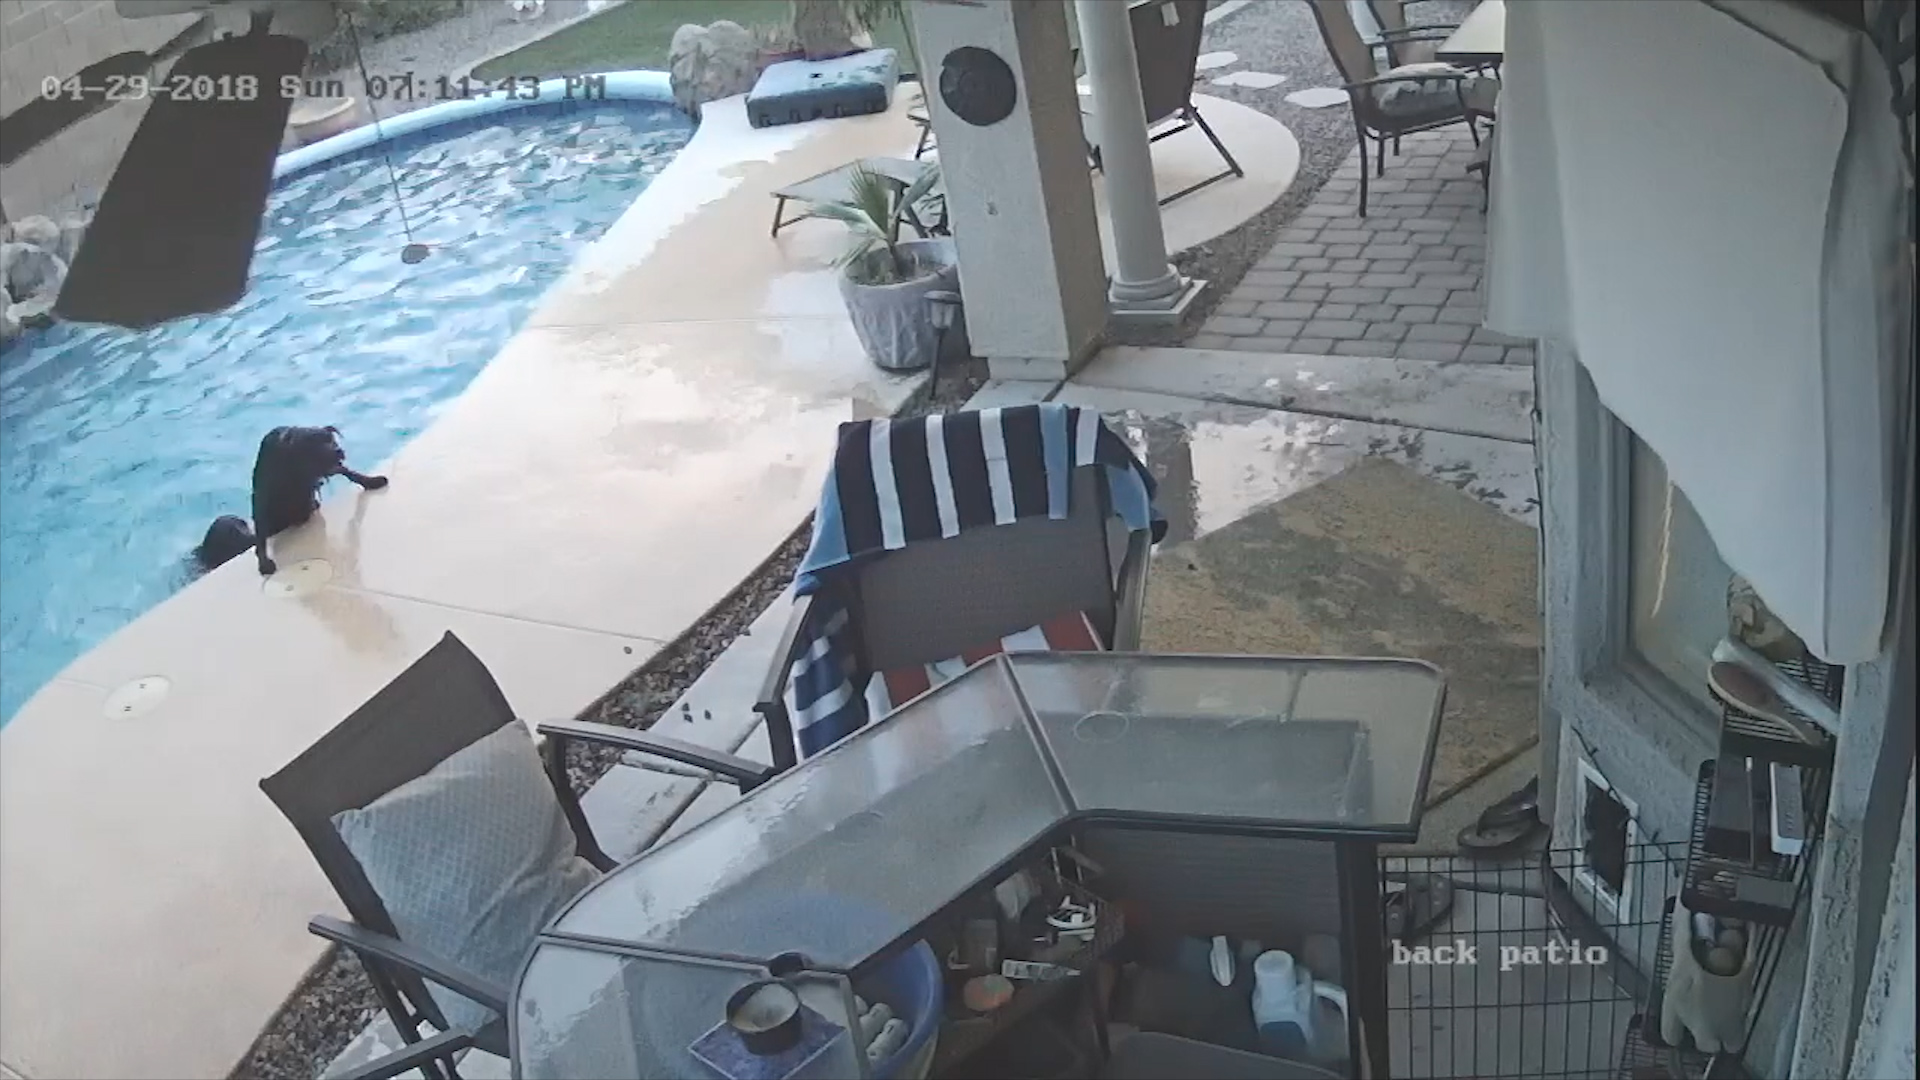 Hero dog saves mate from drowning in backyard pool